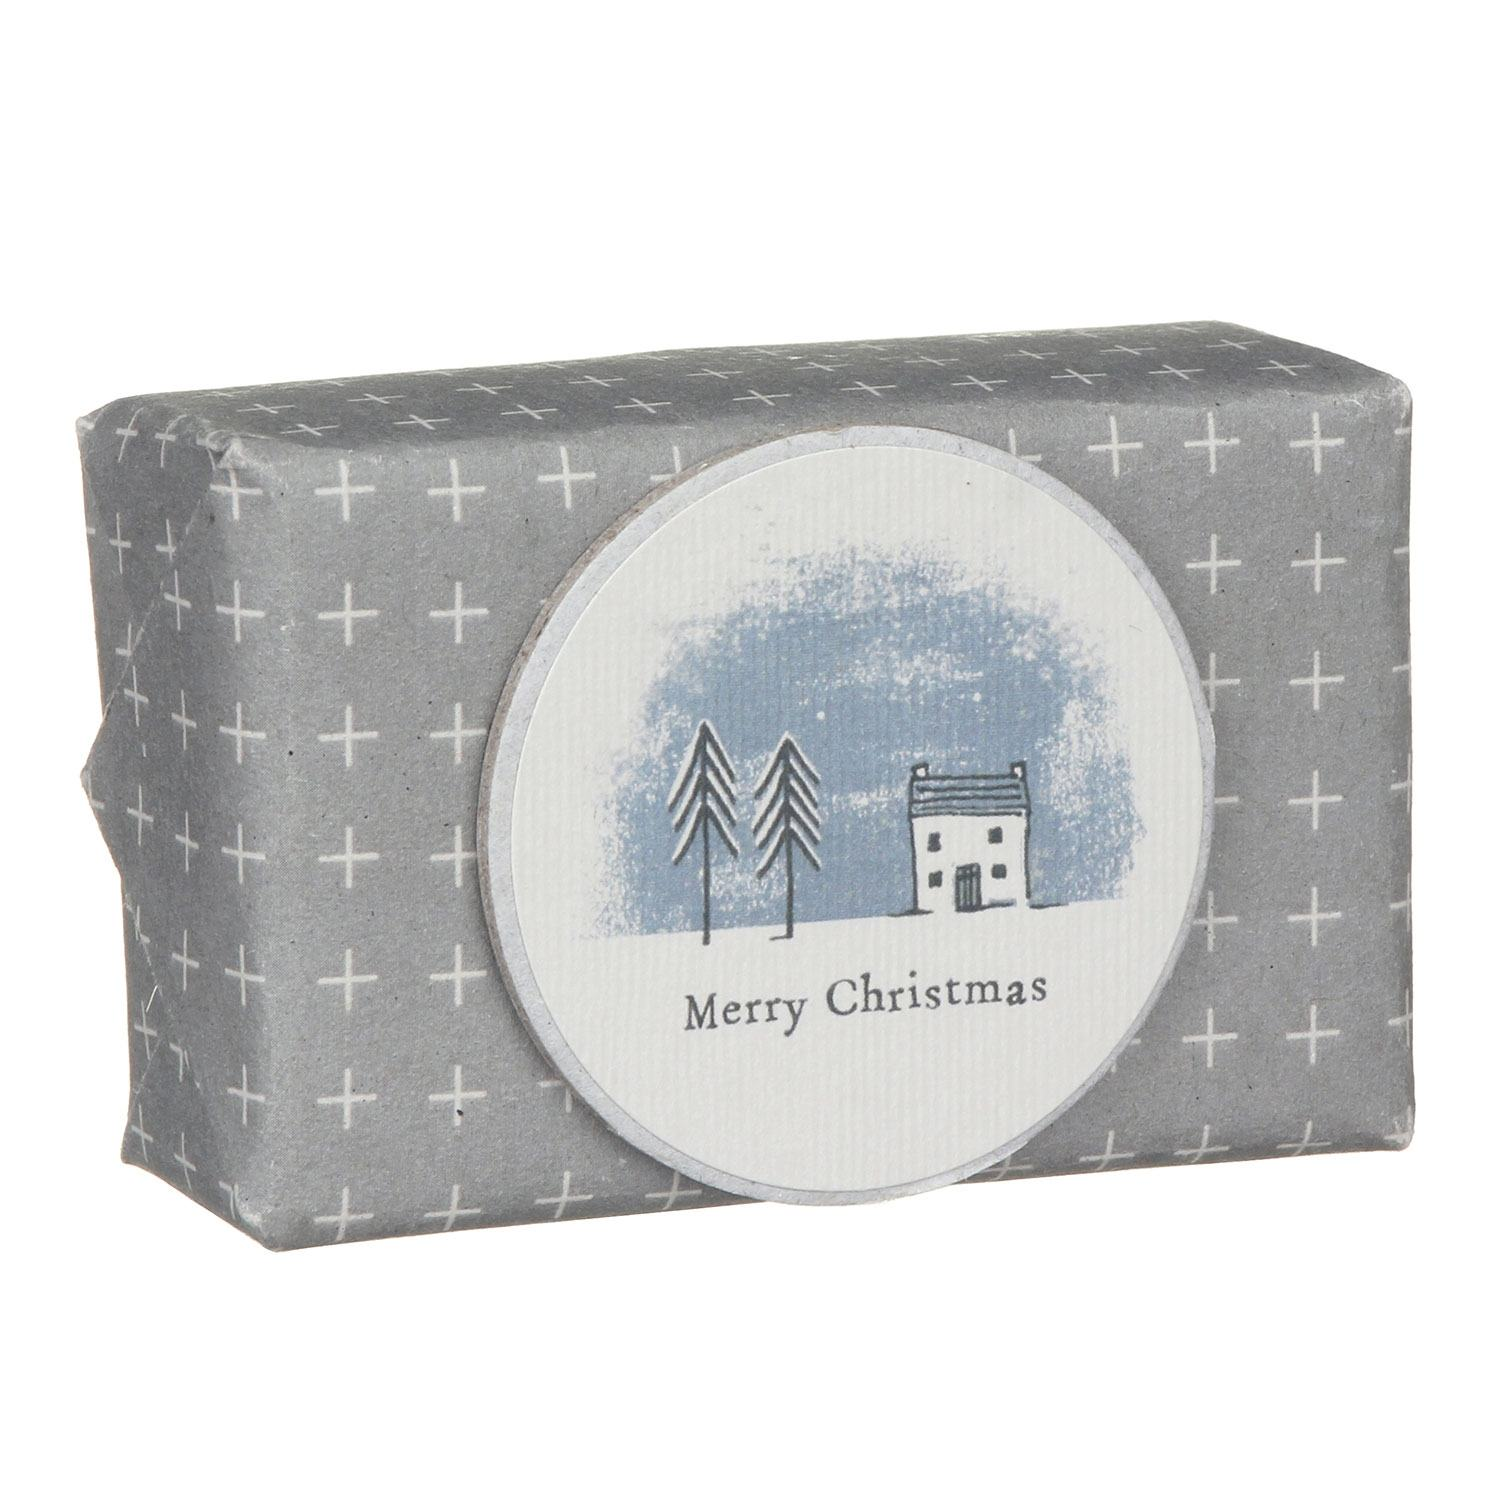 East of India Merry Christmas Wrapped Soap | Temptation Gifts